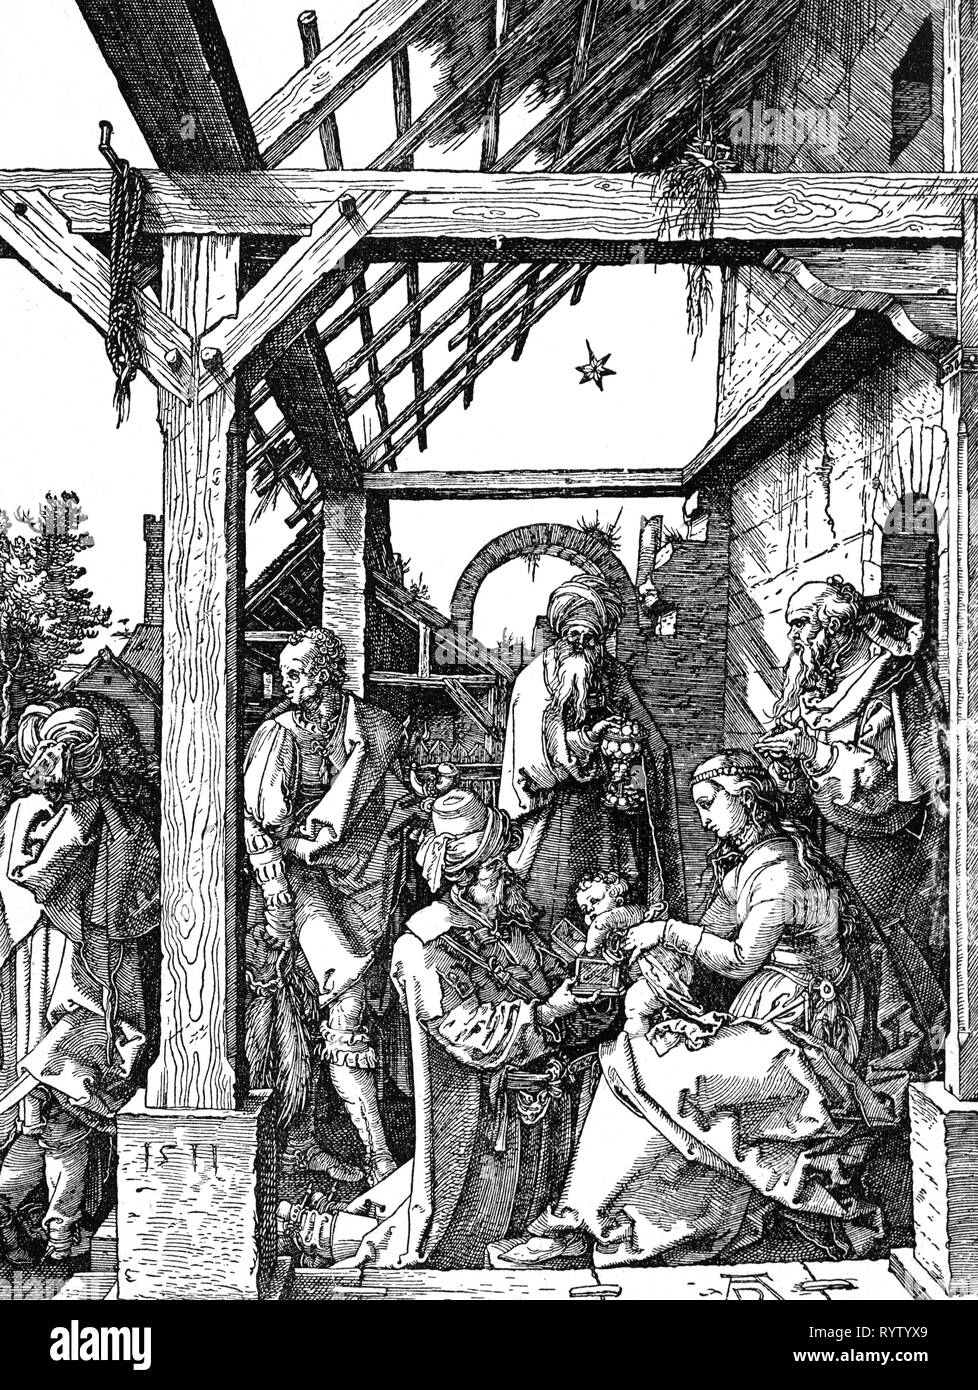 religion, Christianity, Three Kings, 'Adoration of the Magi', woodcut by Albrecht Duerer (1471 - 1528), 29.5 x 22.1 cm, first half 16th century, graphic, graphics, half-length, half length, sitting, sit, kneel, kneeling, Joseph, Mary, Madonna, Jesus Christ, the infant Jesus, baby Jesus, divine infant, child, children, kid, kids, Kaspar, Melchior, Balthazar, nativity, nativities, Messiah, Saviour, Redeemer, holding, hold, present, presents, gold, incense, frankincense, myrrh, worship, worships, religion, religions, king, kings, woodcut, woodcuts, histor, Artist's Copyright has not to be cleared - Stock Image